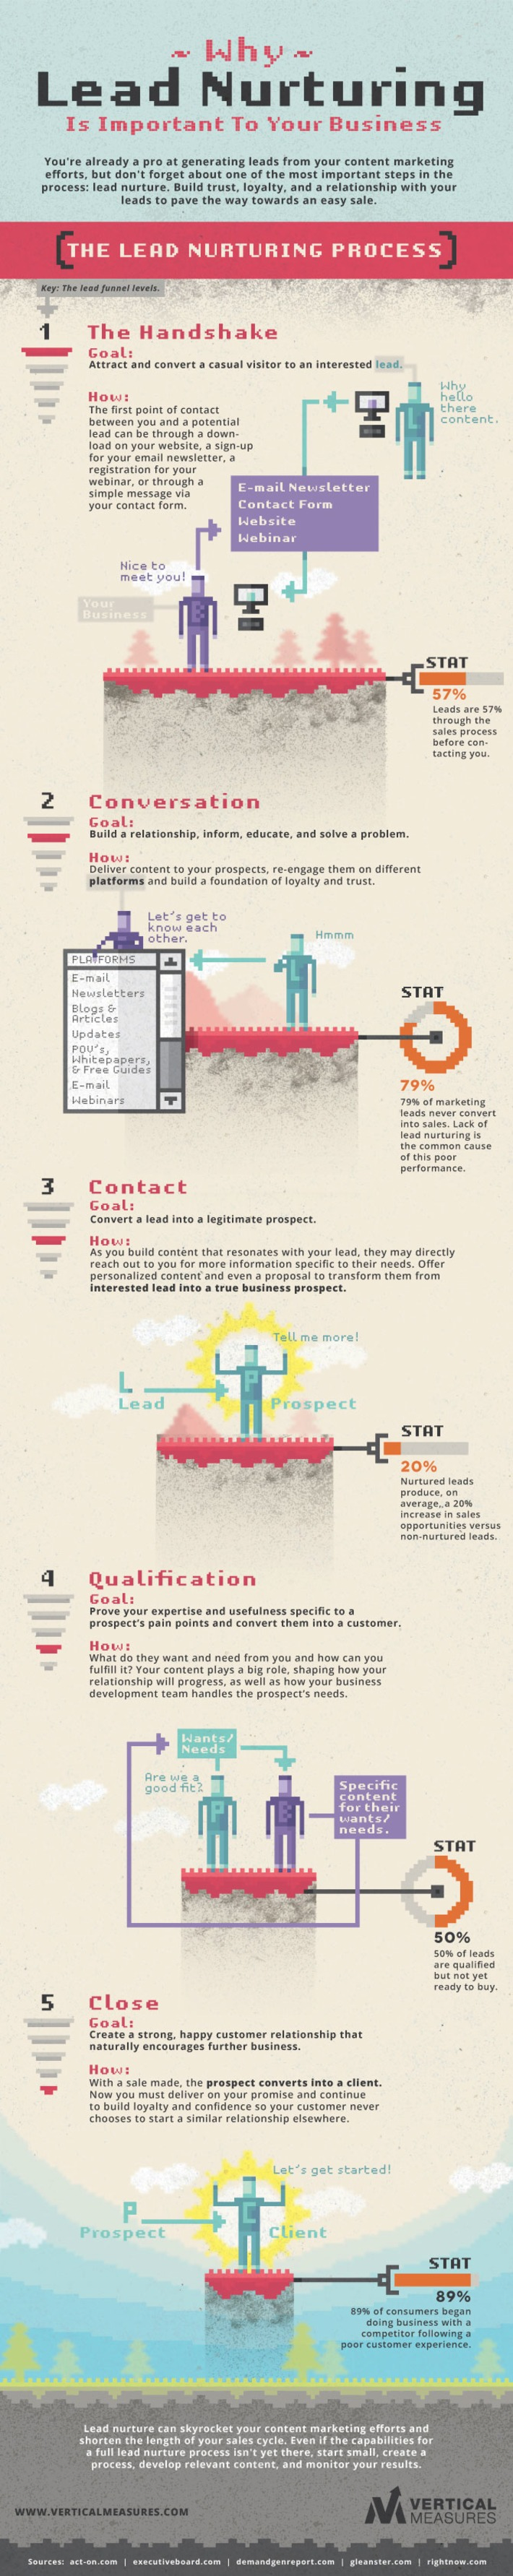 The Marketing Technology Alert Infographic Marketing Marketing Technology Marketing Leads